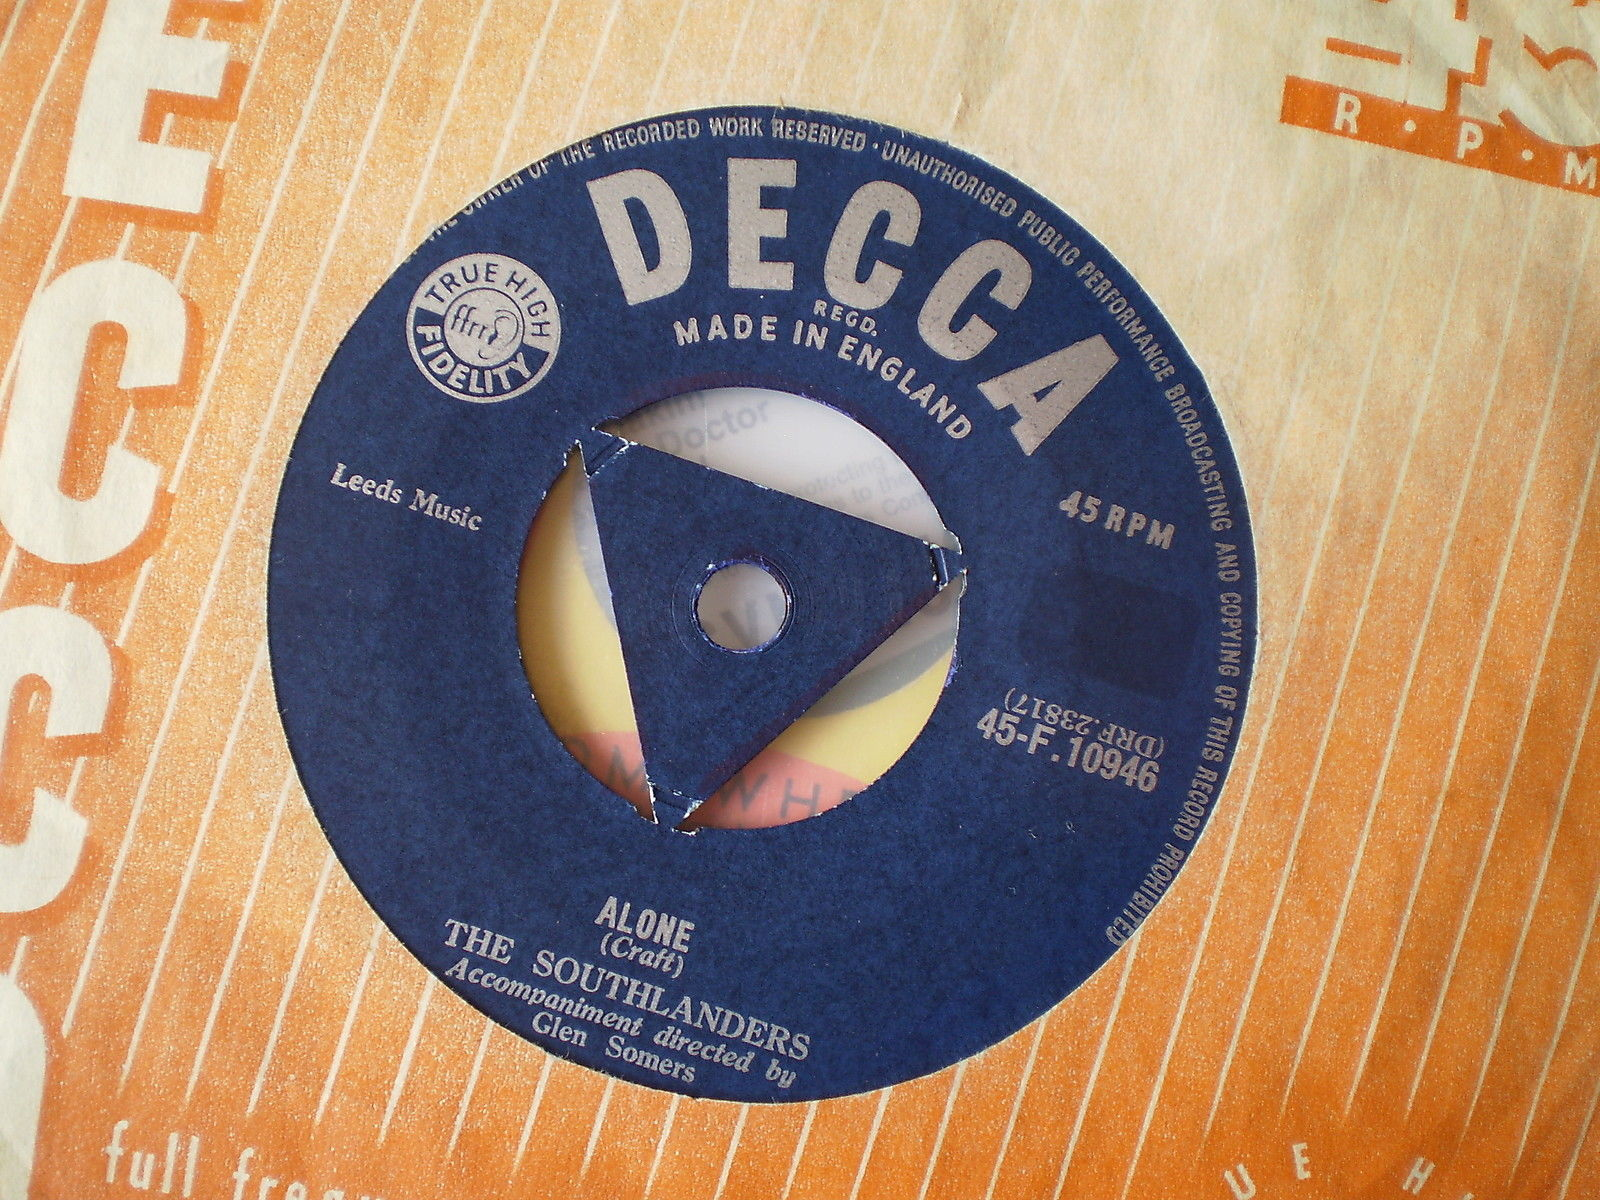 Jim's first single he appeared on, 'Alone' by the Southlanders 1957